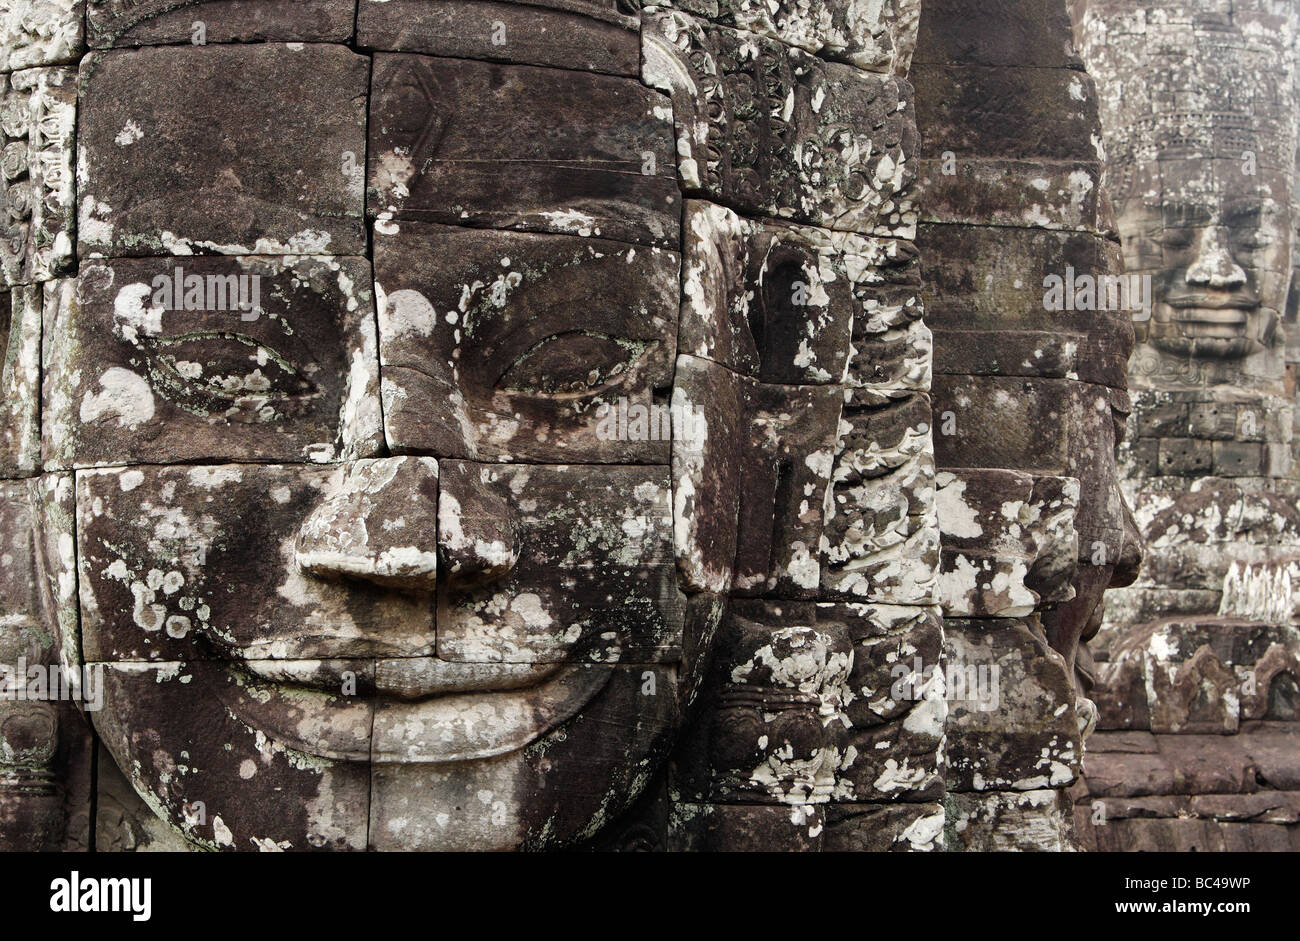 Large smiling face carved in stone, Bayon temple ruins, [Angkor Thom], Cambodia Stock Photo